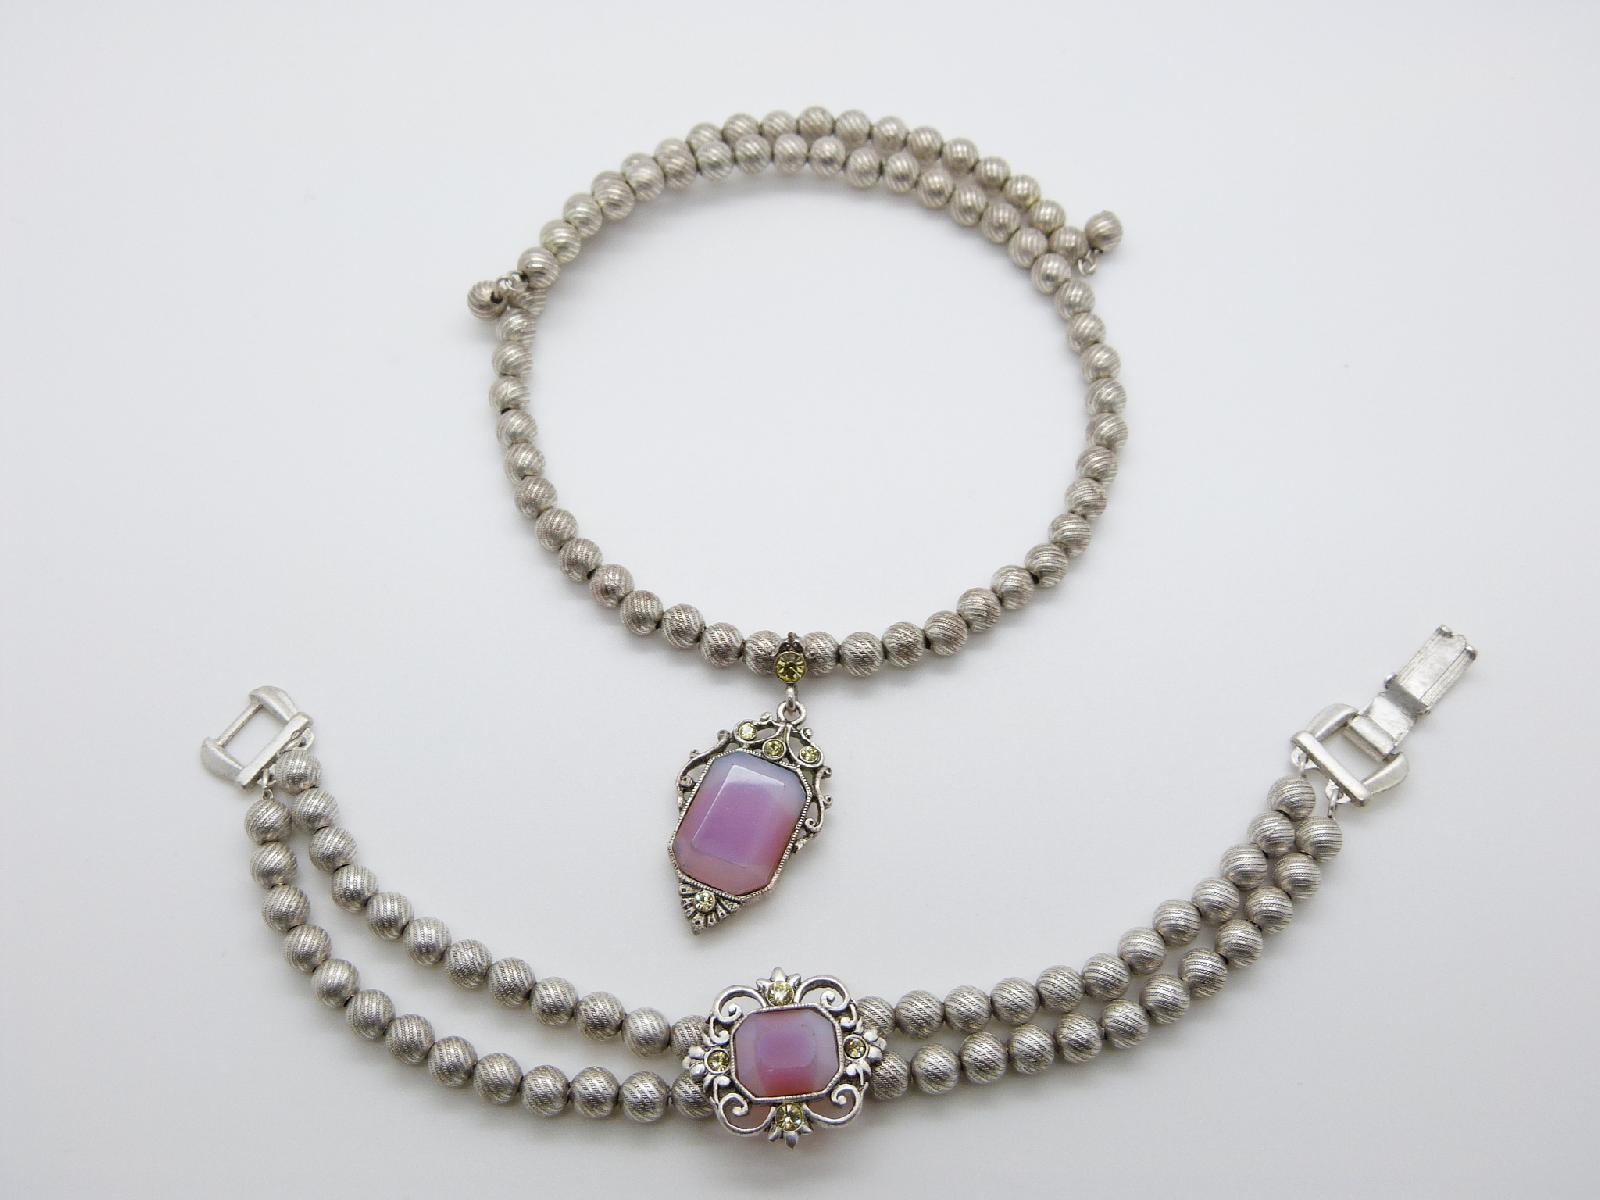 £45.00 - 1990s Silver Metal Bead Flexible Choker Opaline Pendant and Bracelet Set